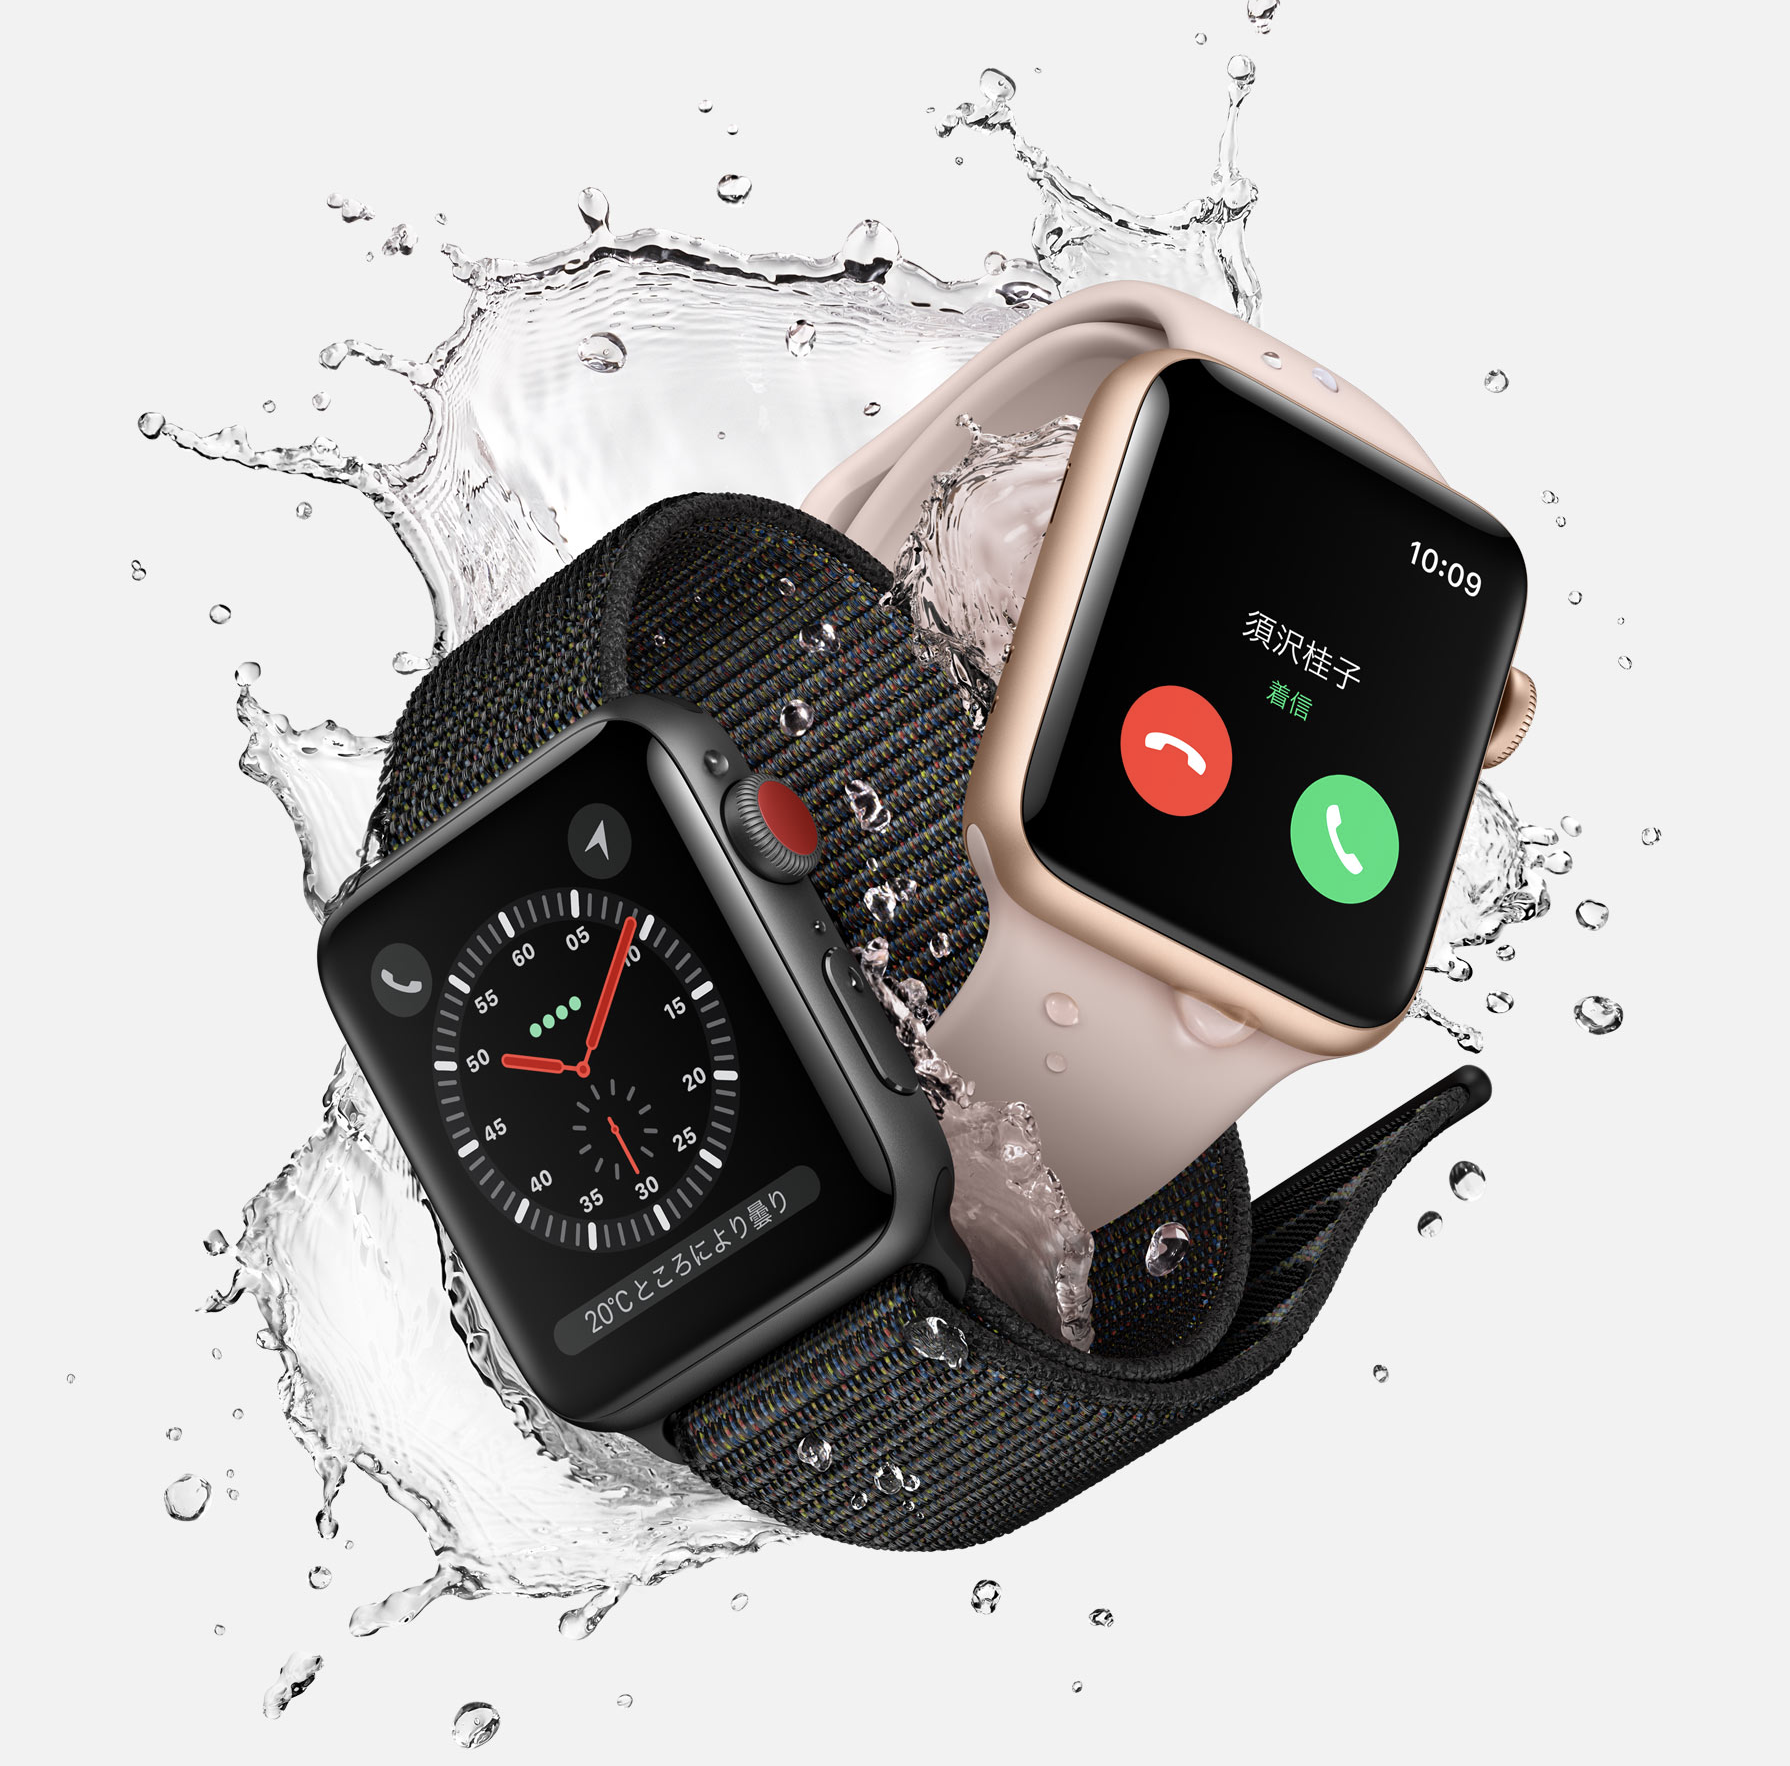 Apple Watch series 3 Cellularモデル